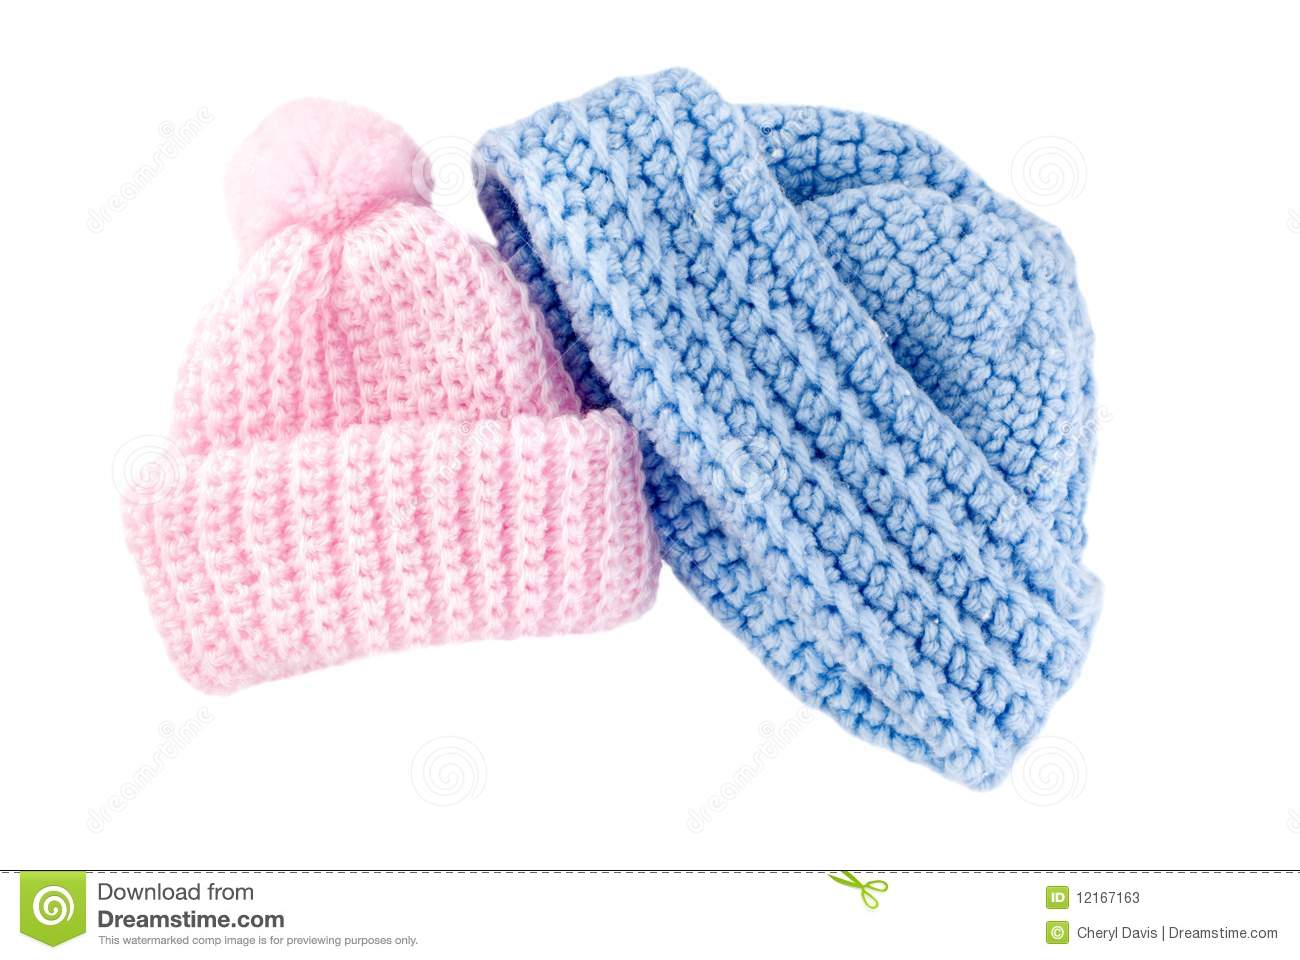 0e9d51607cd Crocheted Baby Hats For Boy And Girl Stock Image - Image of isolated ...